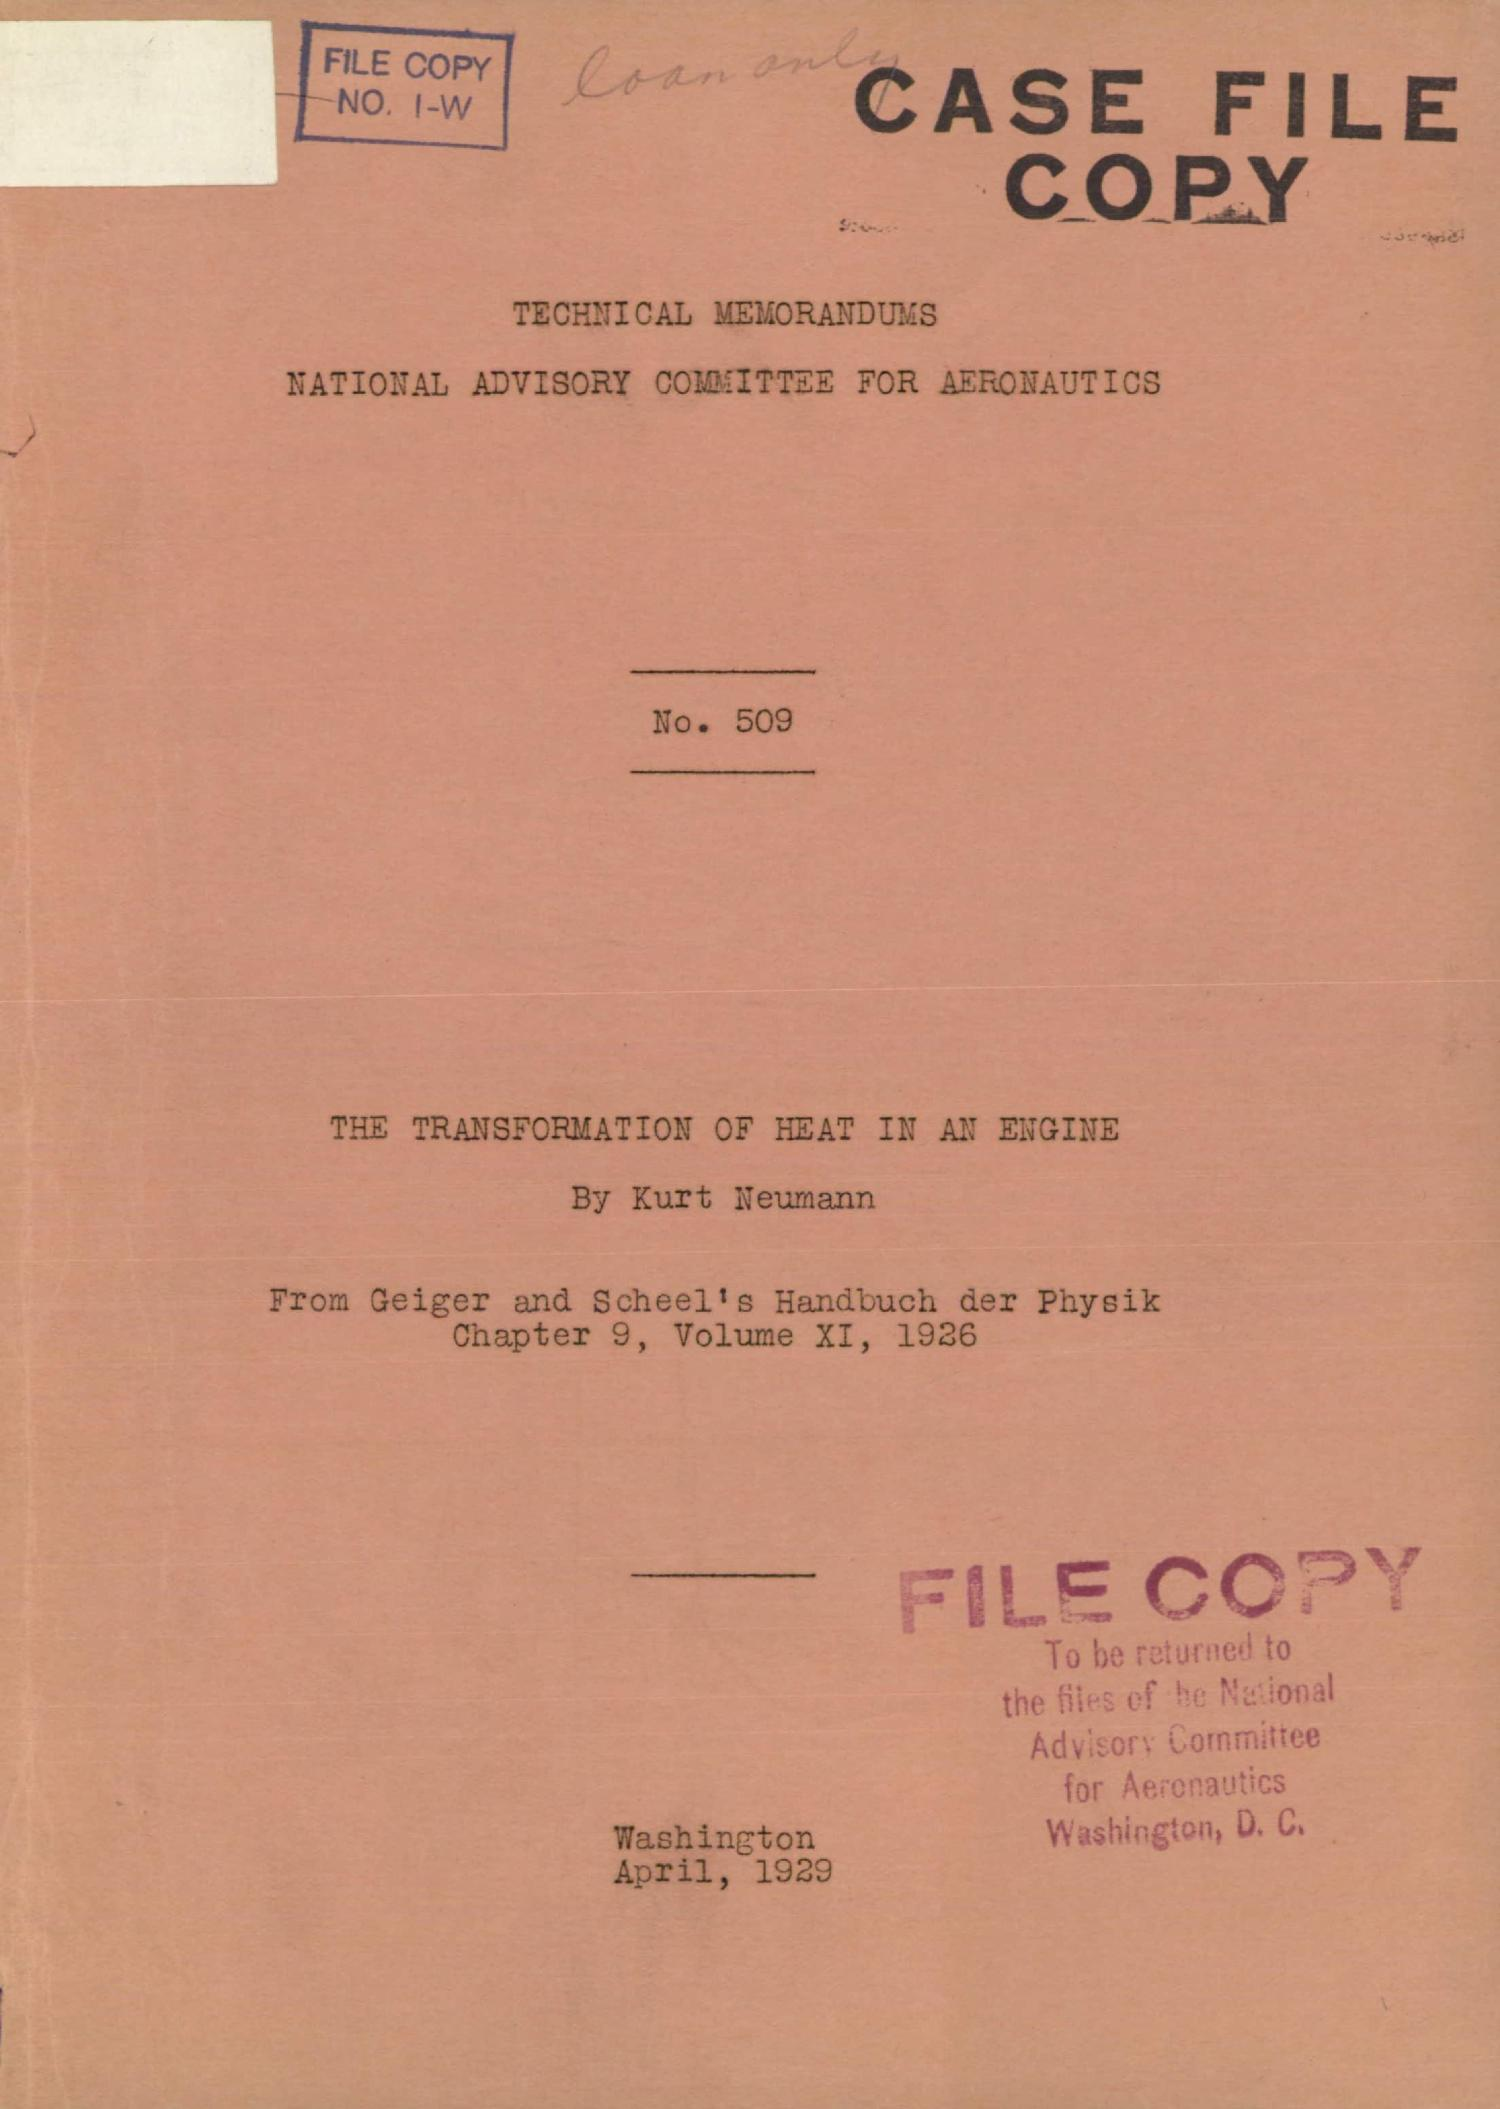 The Transformation of Heat in an Engine                                                                                                      [Sequence #]: 1 of 34